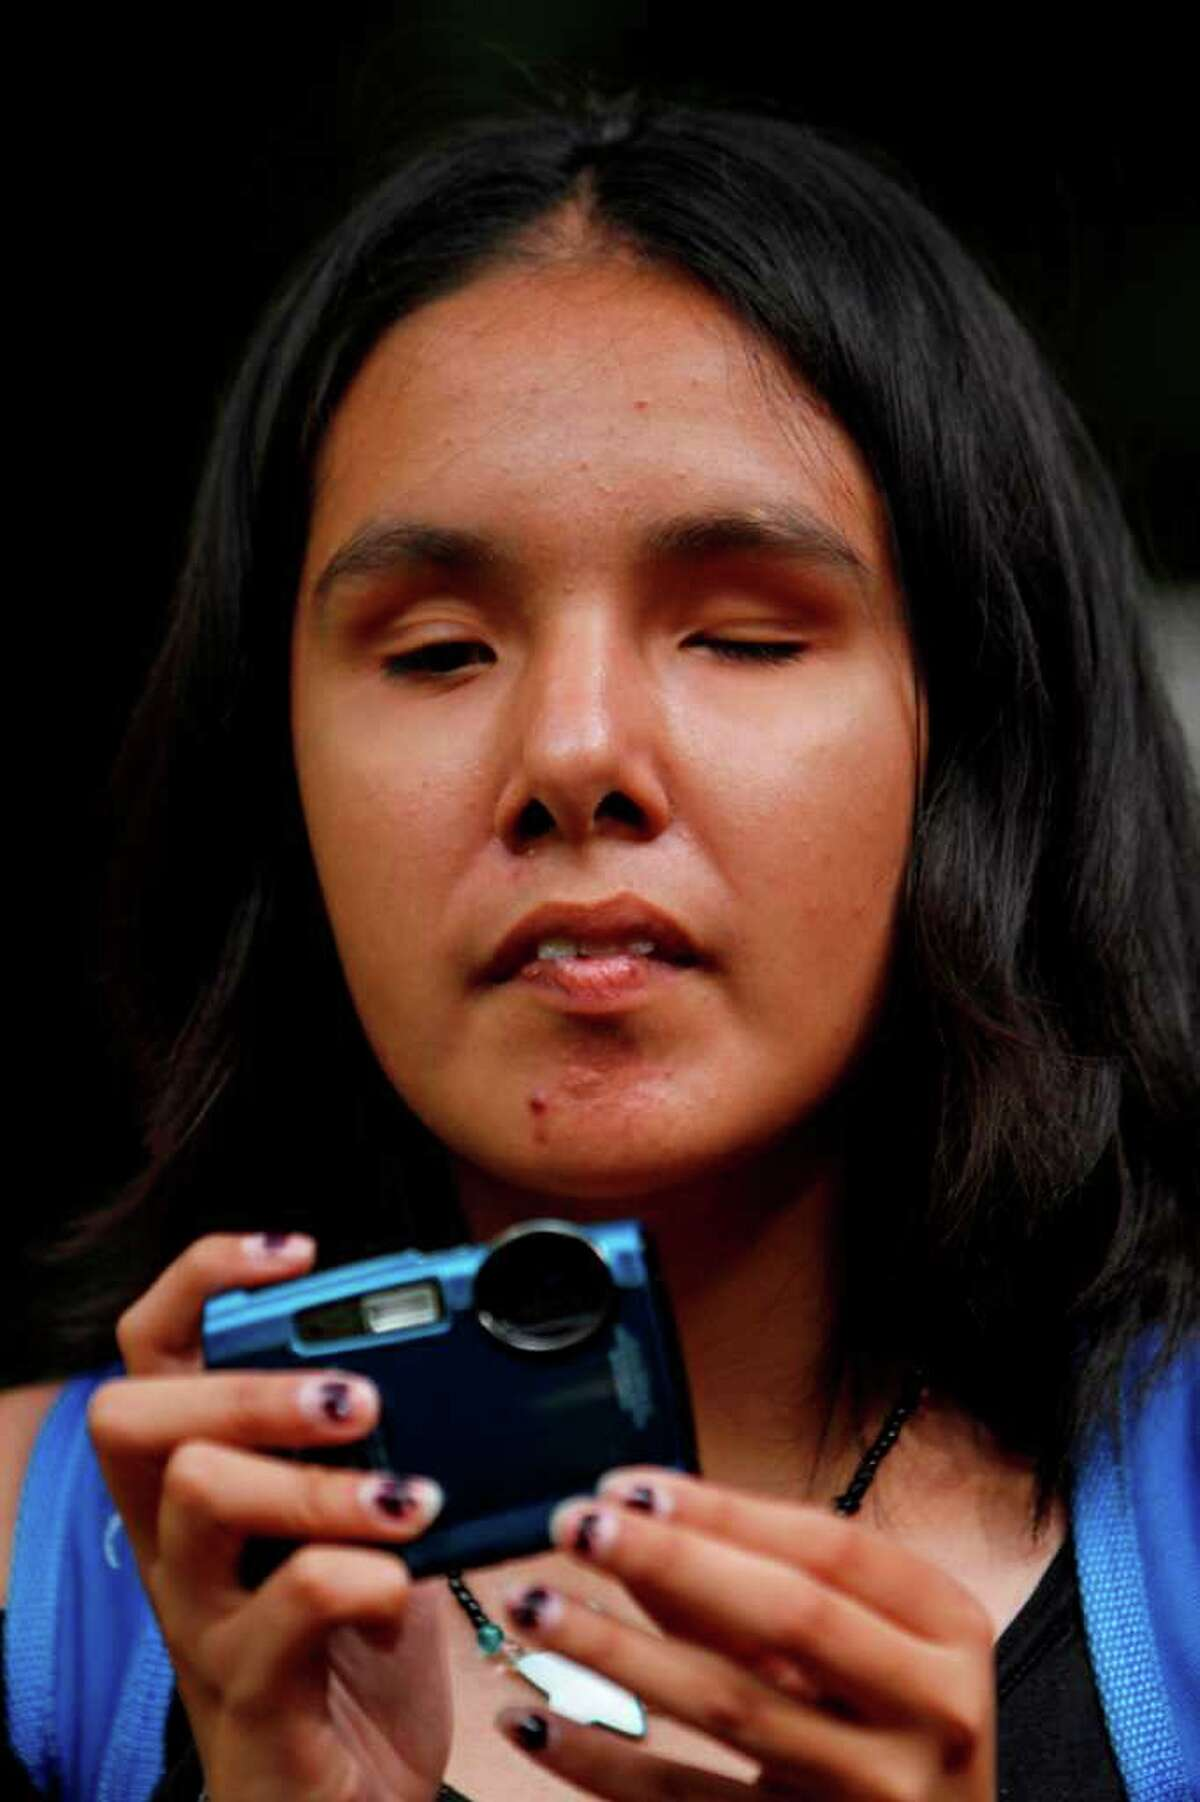 In this photo taken Sept. 7, 2011, Nancy Sarahi feels her camera as she prepares to take a photograph at a park in Mexico City.